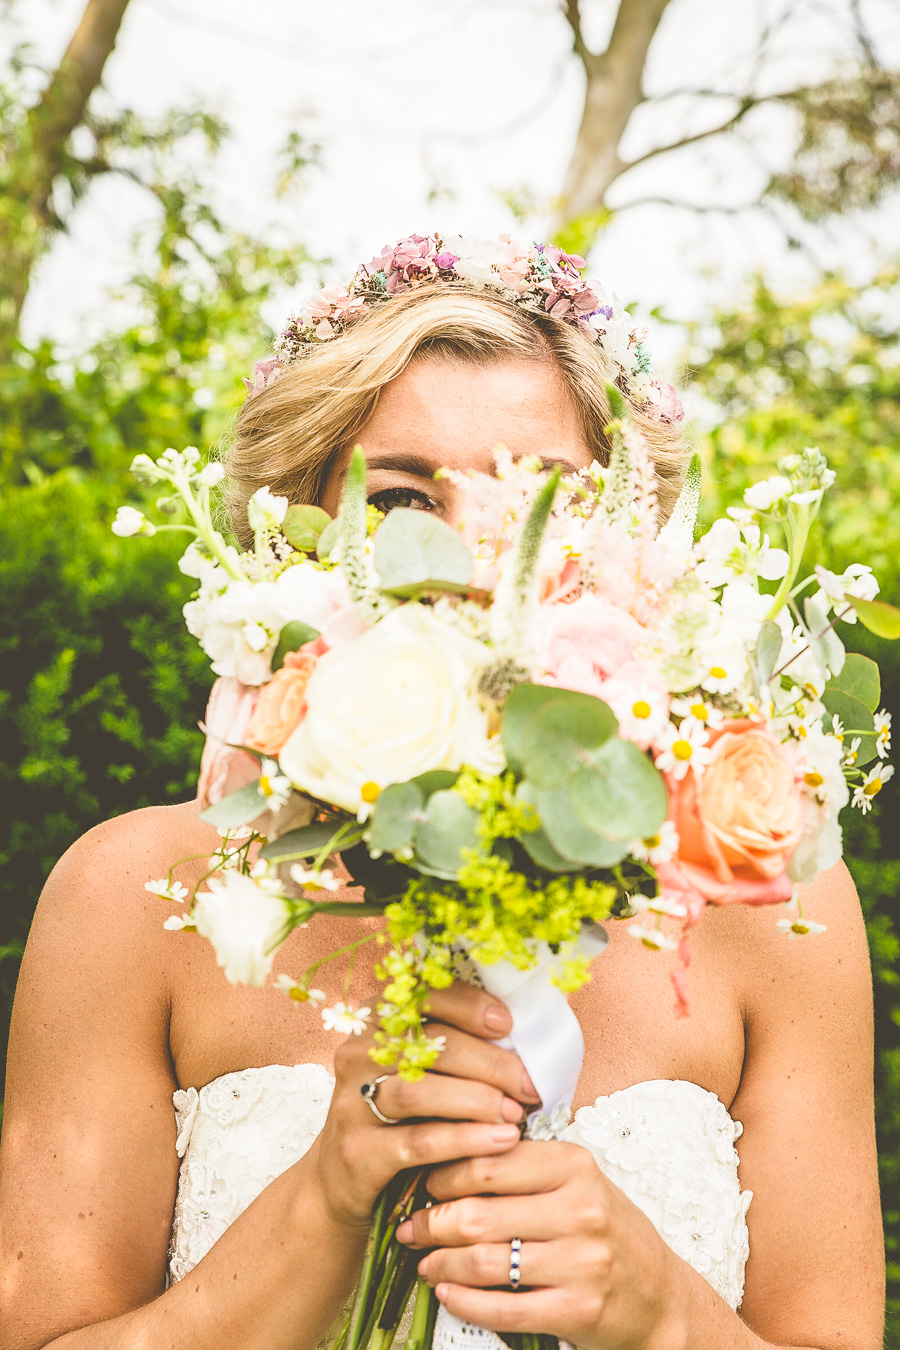 Flower Crown Bride & Floral Theme Outdoor Summer Wedding: Emily & Dan